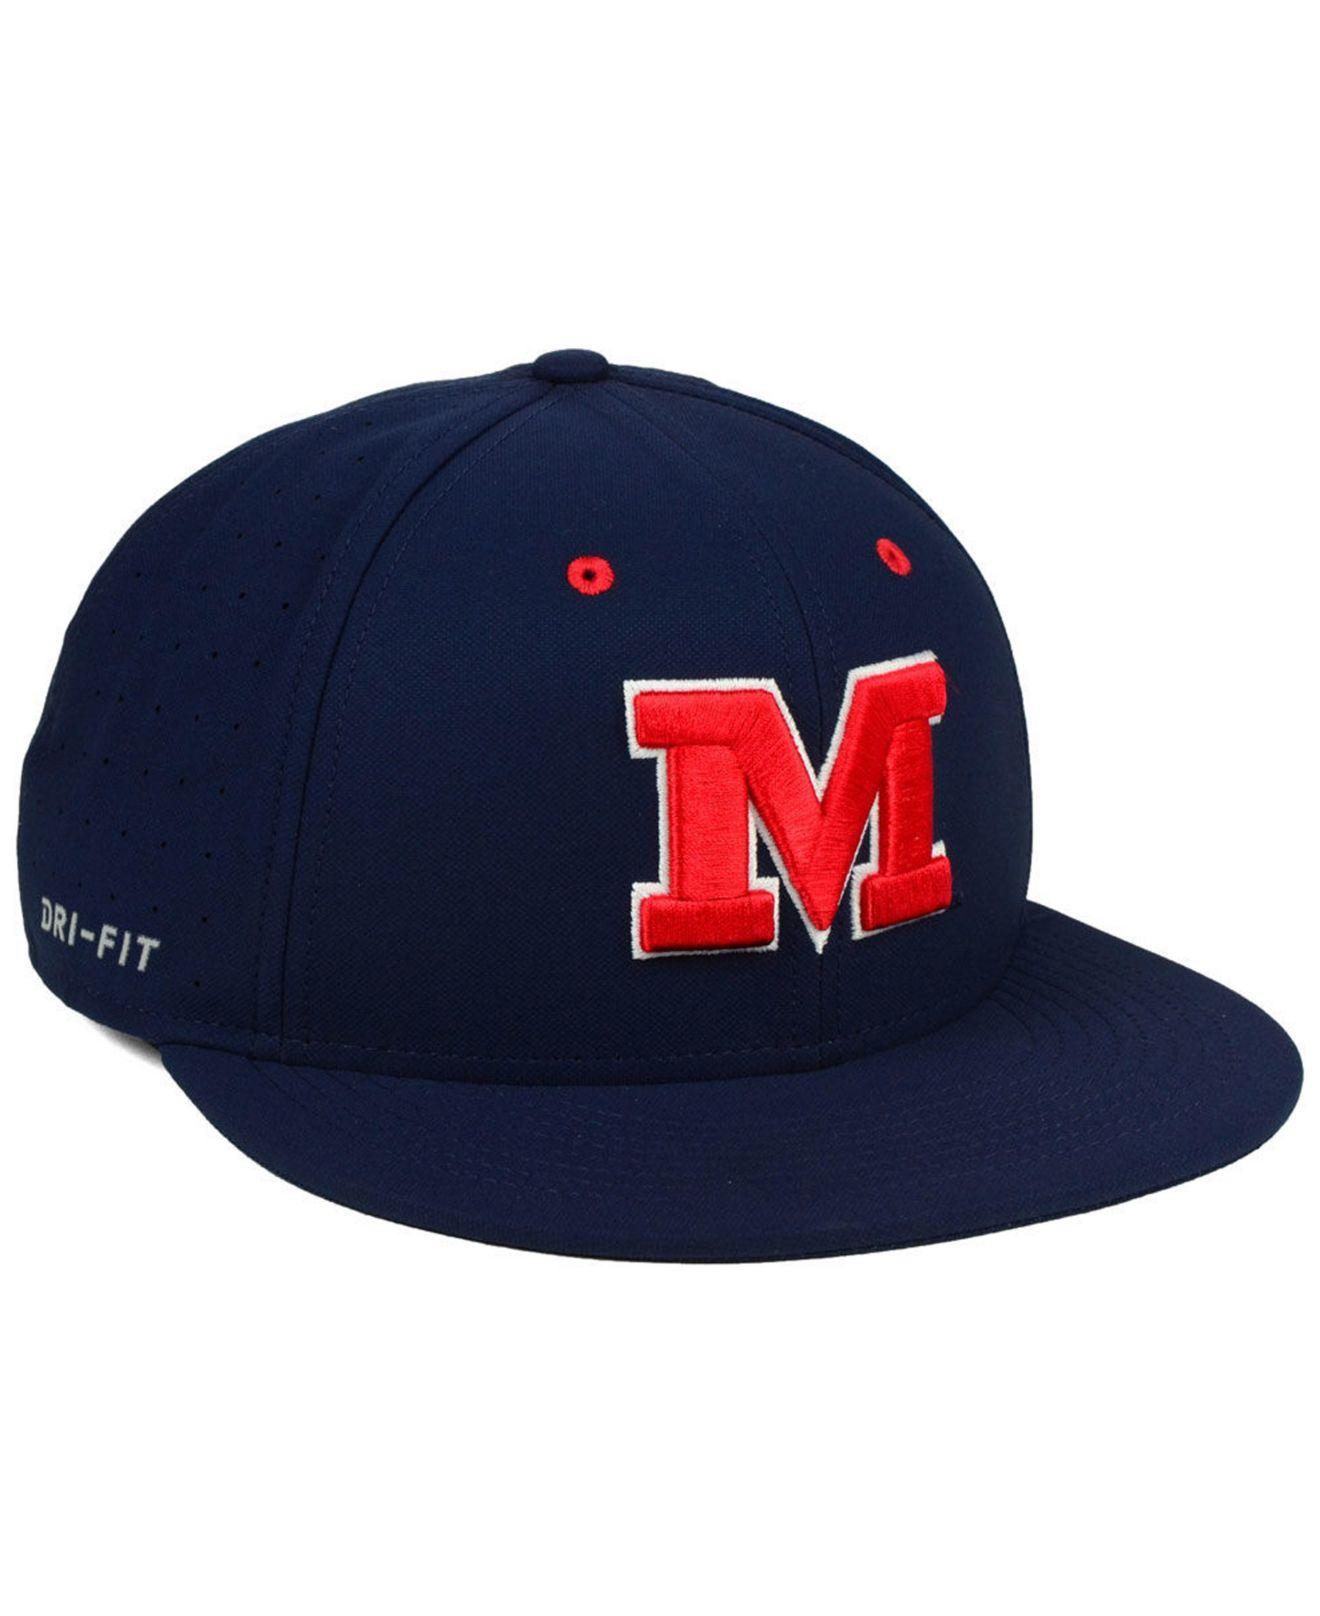 c77ae3ebee4 ... coupon for nike blue ole miss rebels aerobill true fitted baseball cap  for men lyst.